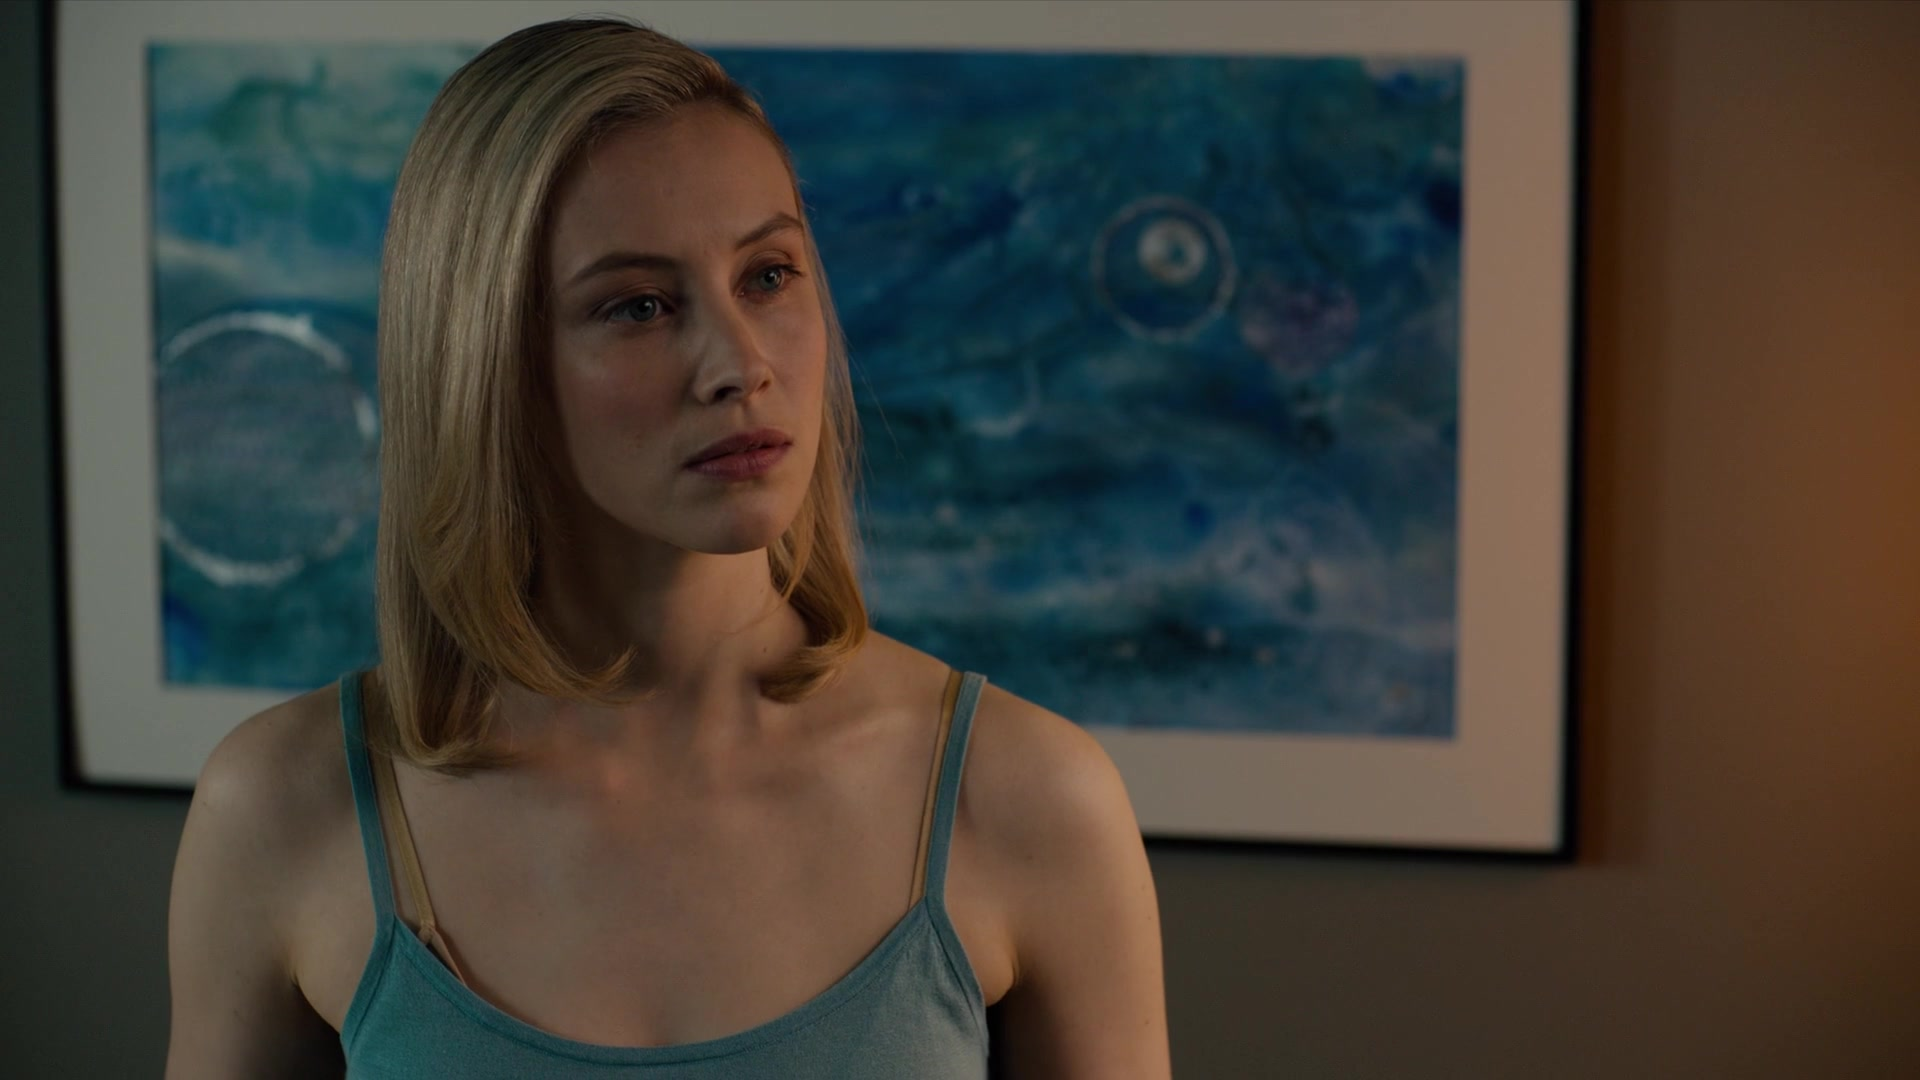 'True Detective' 3.04 & 3.05 Screencaps